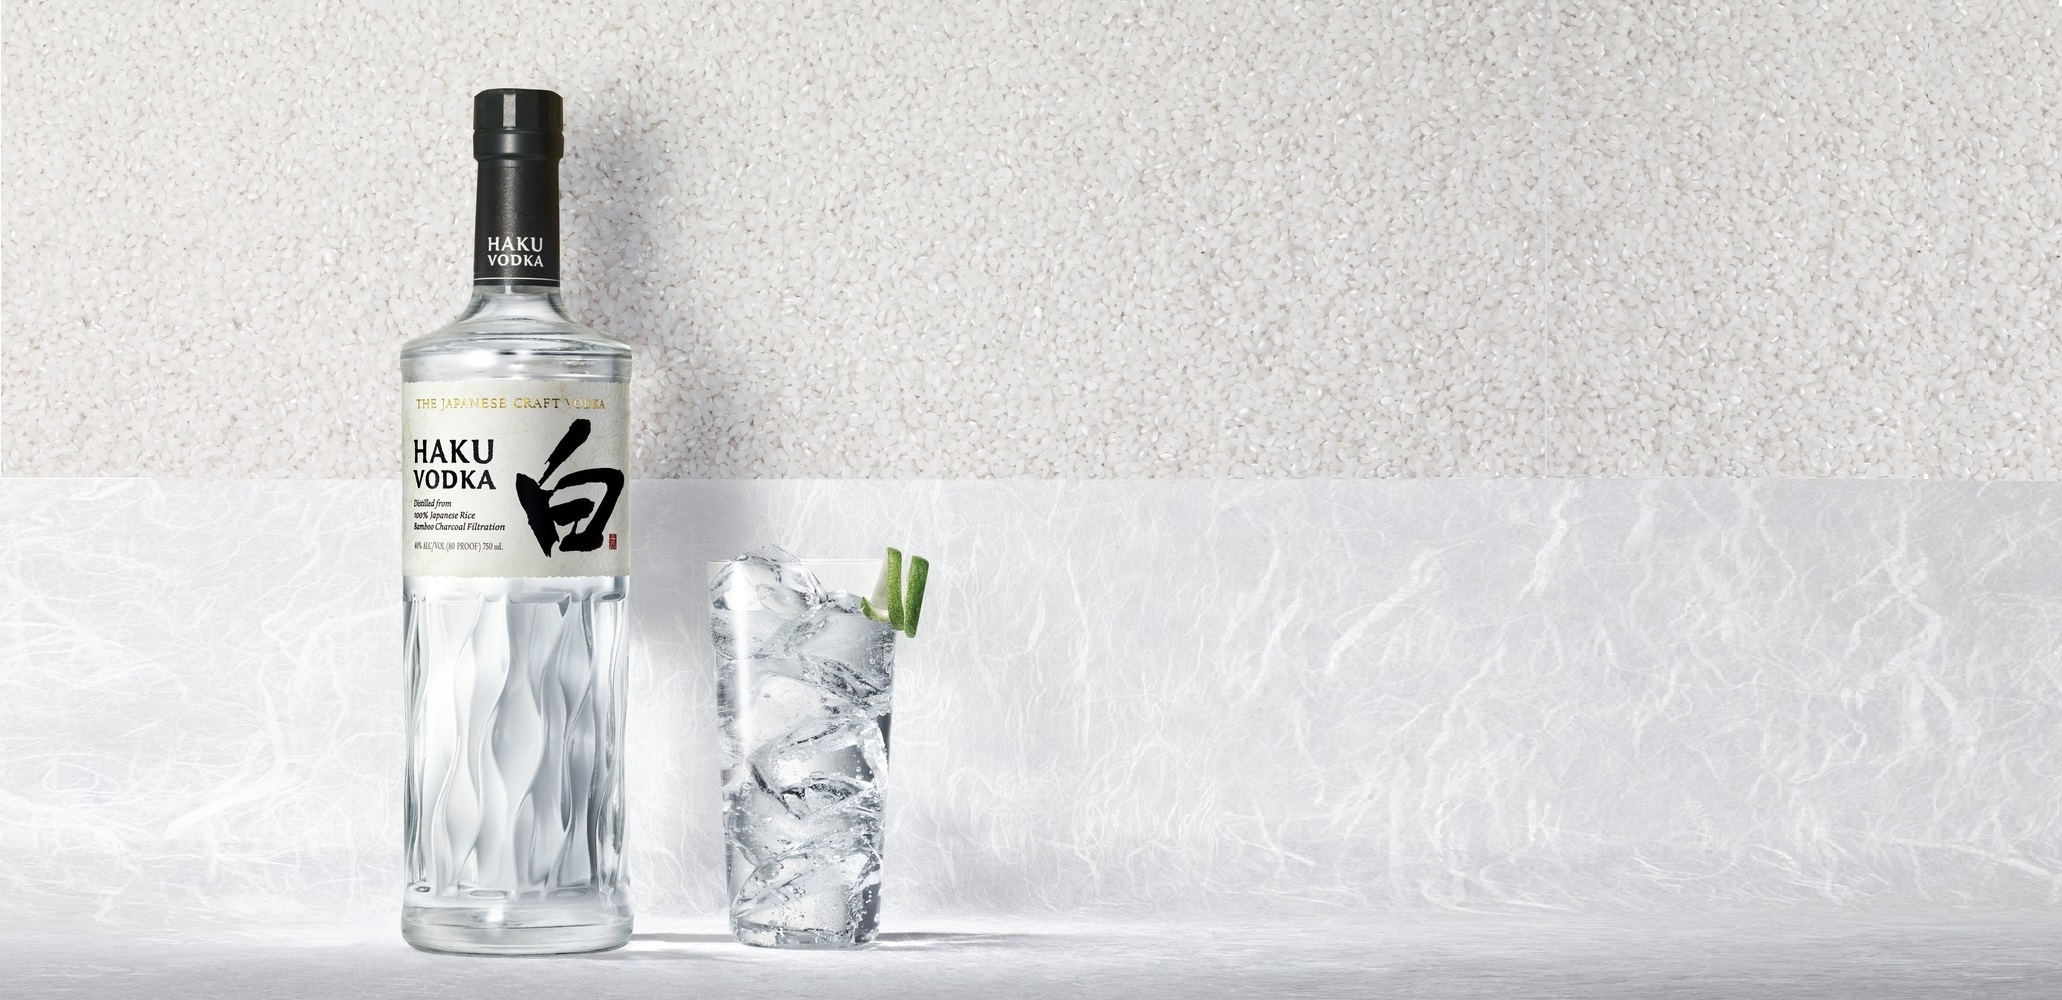 Could this Japanese vodka be the shocker of the year?